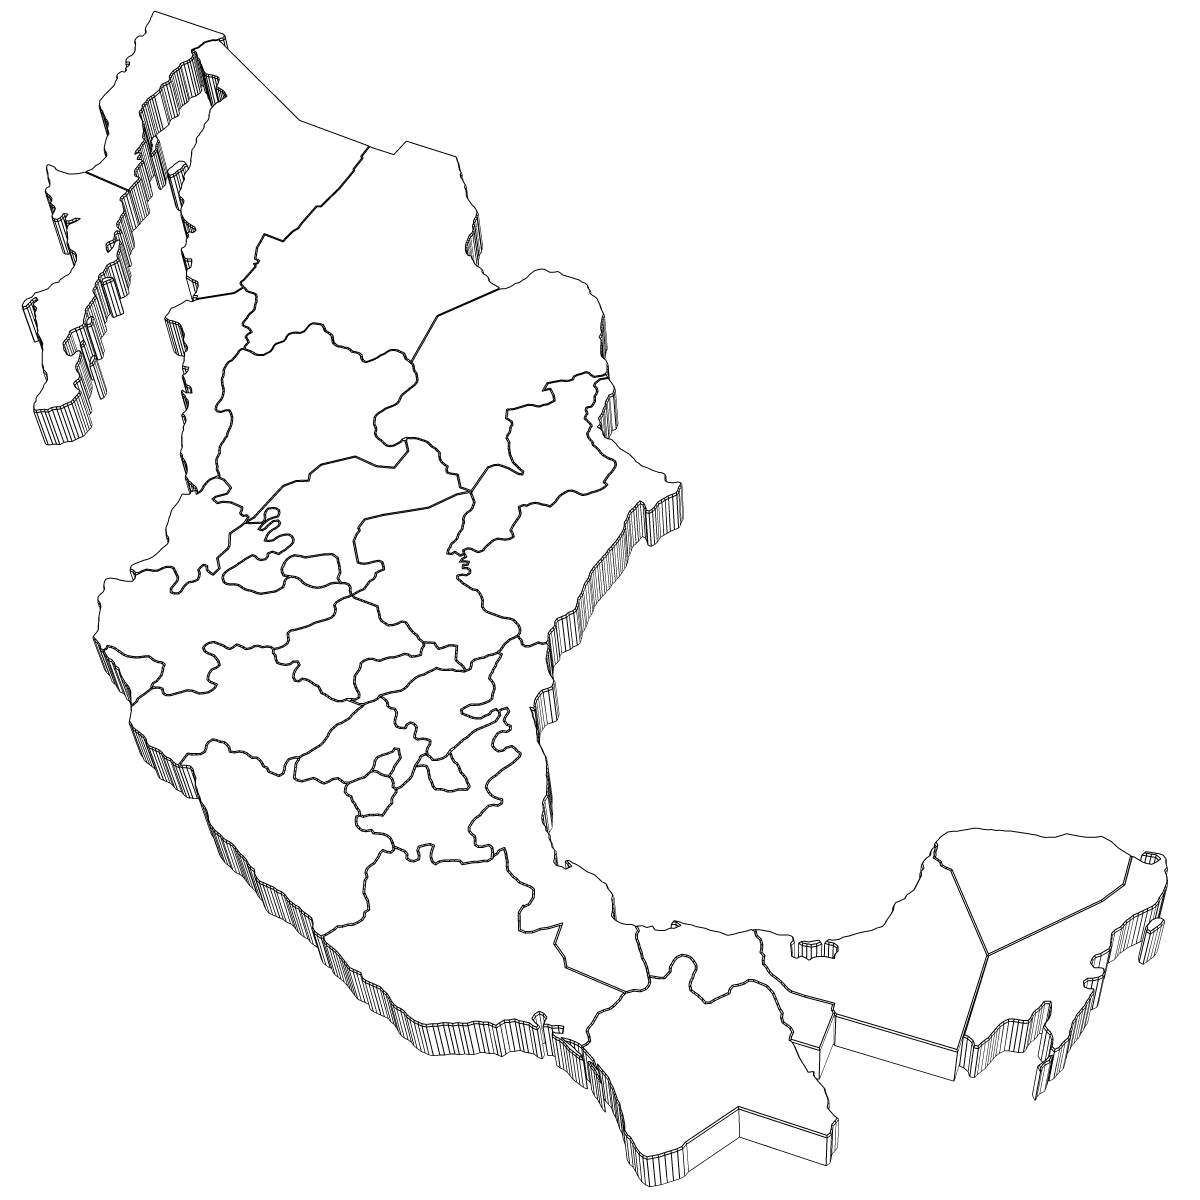 Mexico Map Coloring Page At Getdrawings Com Free For Personal Use